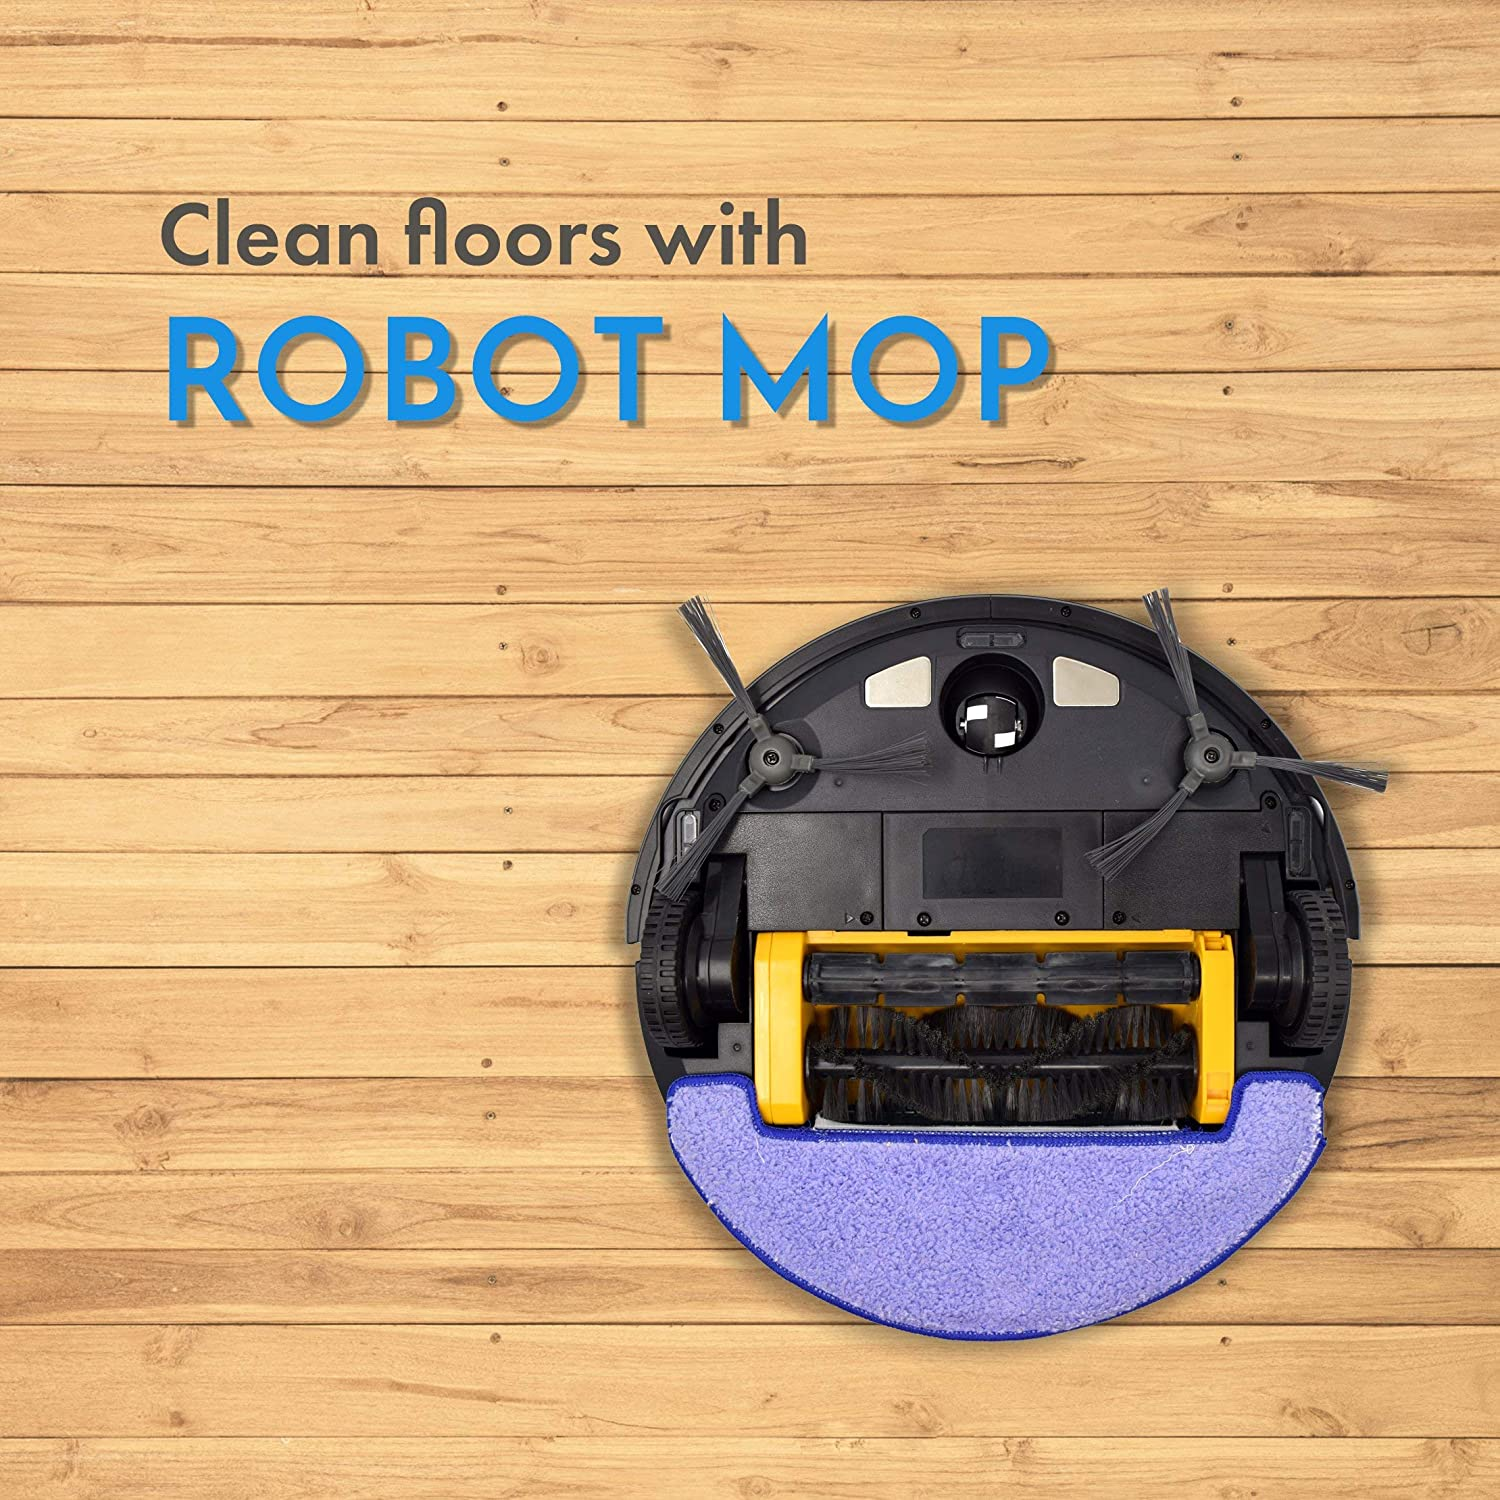 Amazon.com: iView WiFi Smart Robot Vacuum Cleaner Works with ...